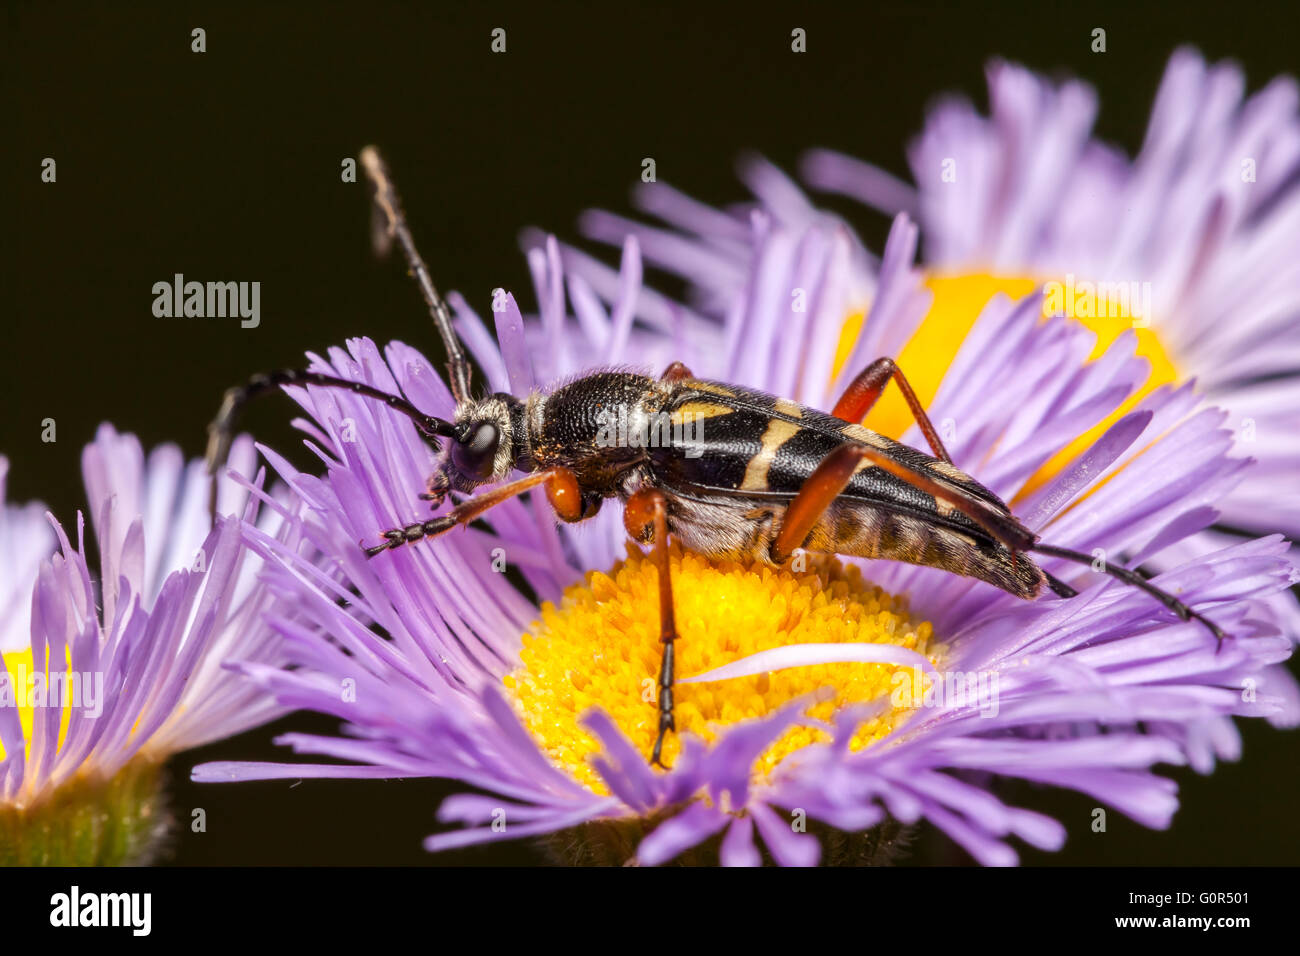 An adult Zebra Longhorn (Typocerus zebra) beetle perches on a violet fleabane flower in search of nectar. - Stock Image